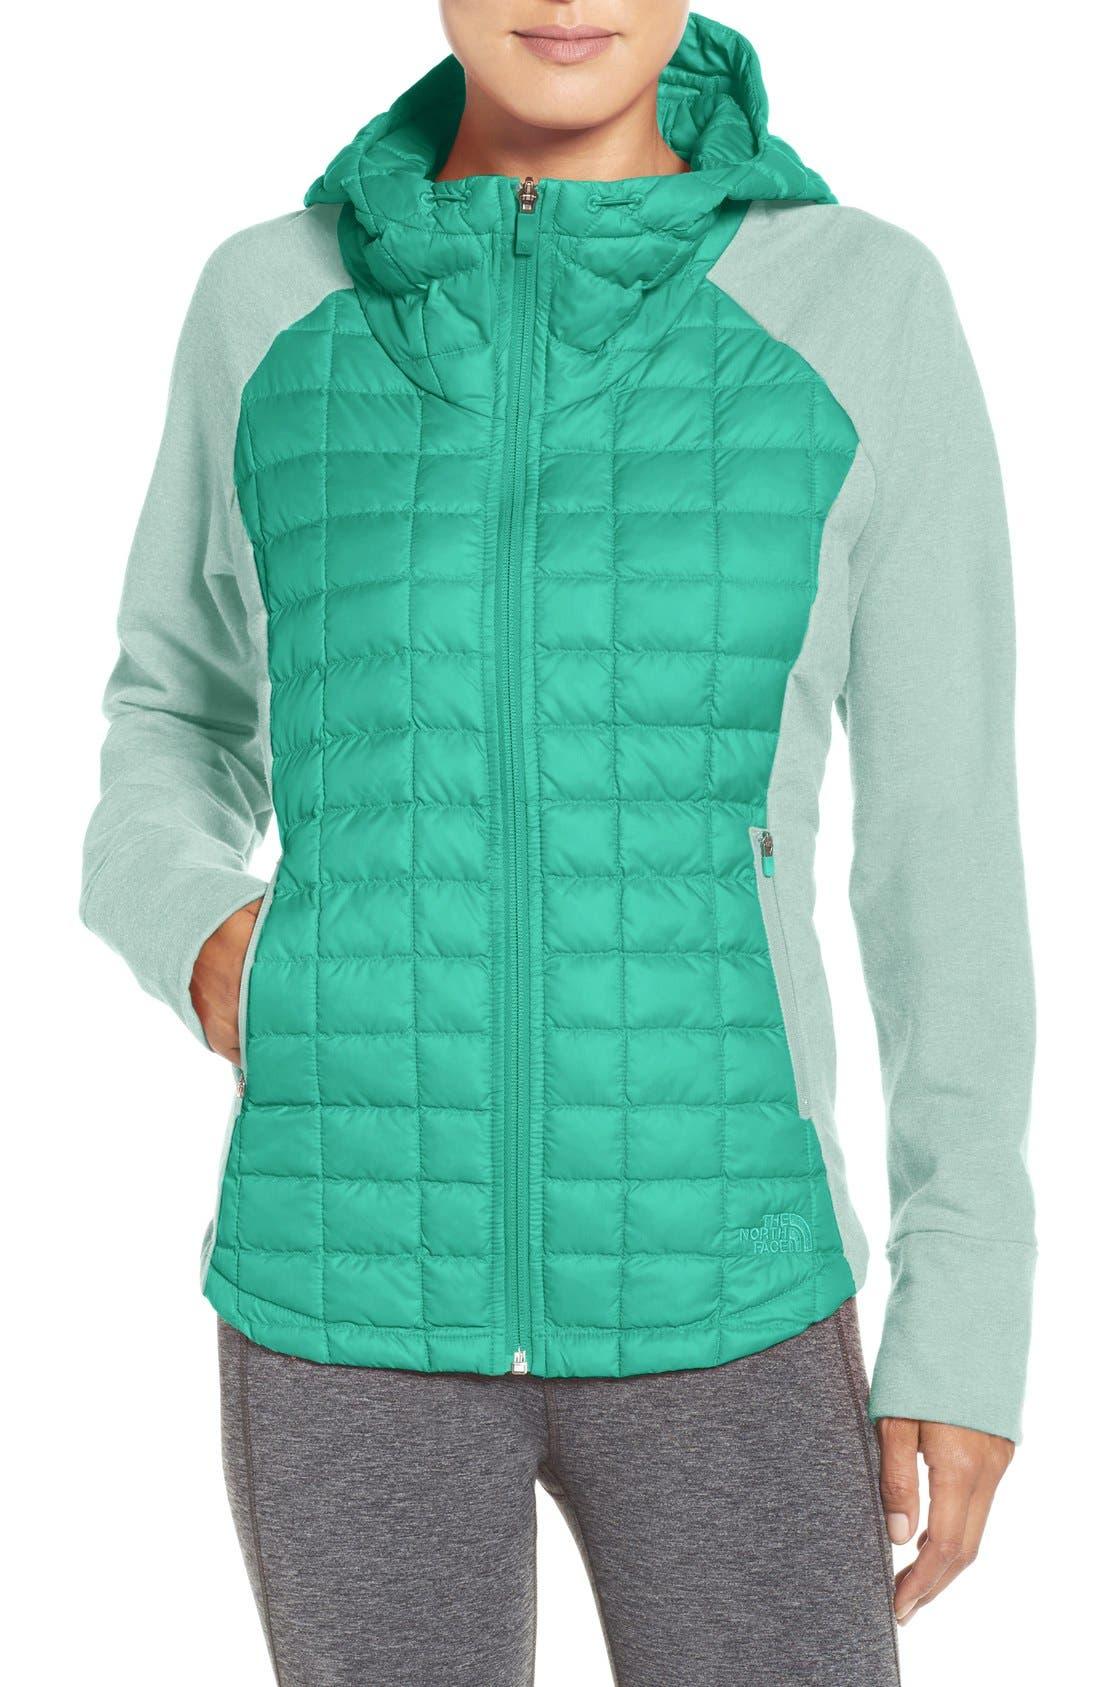 Alternate Image 1 Selected - The North Face 'Endeavor' ThermoBall PrimaLoft® Quilted Jacket